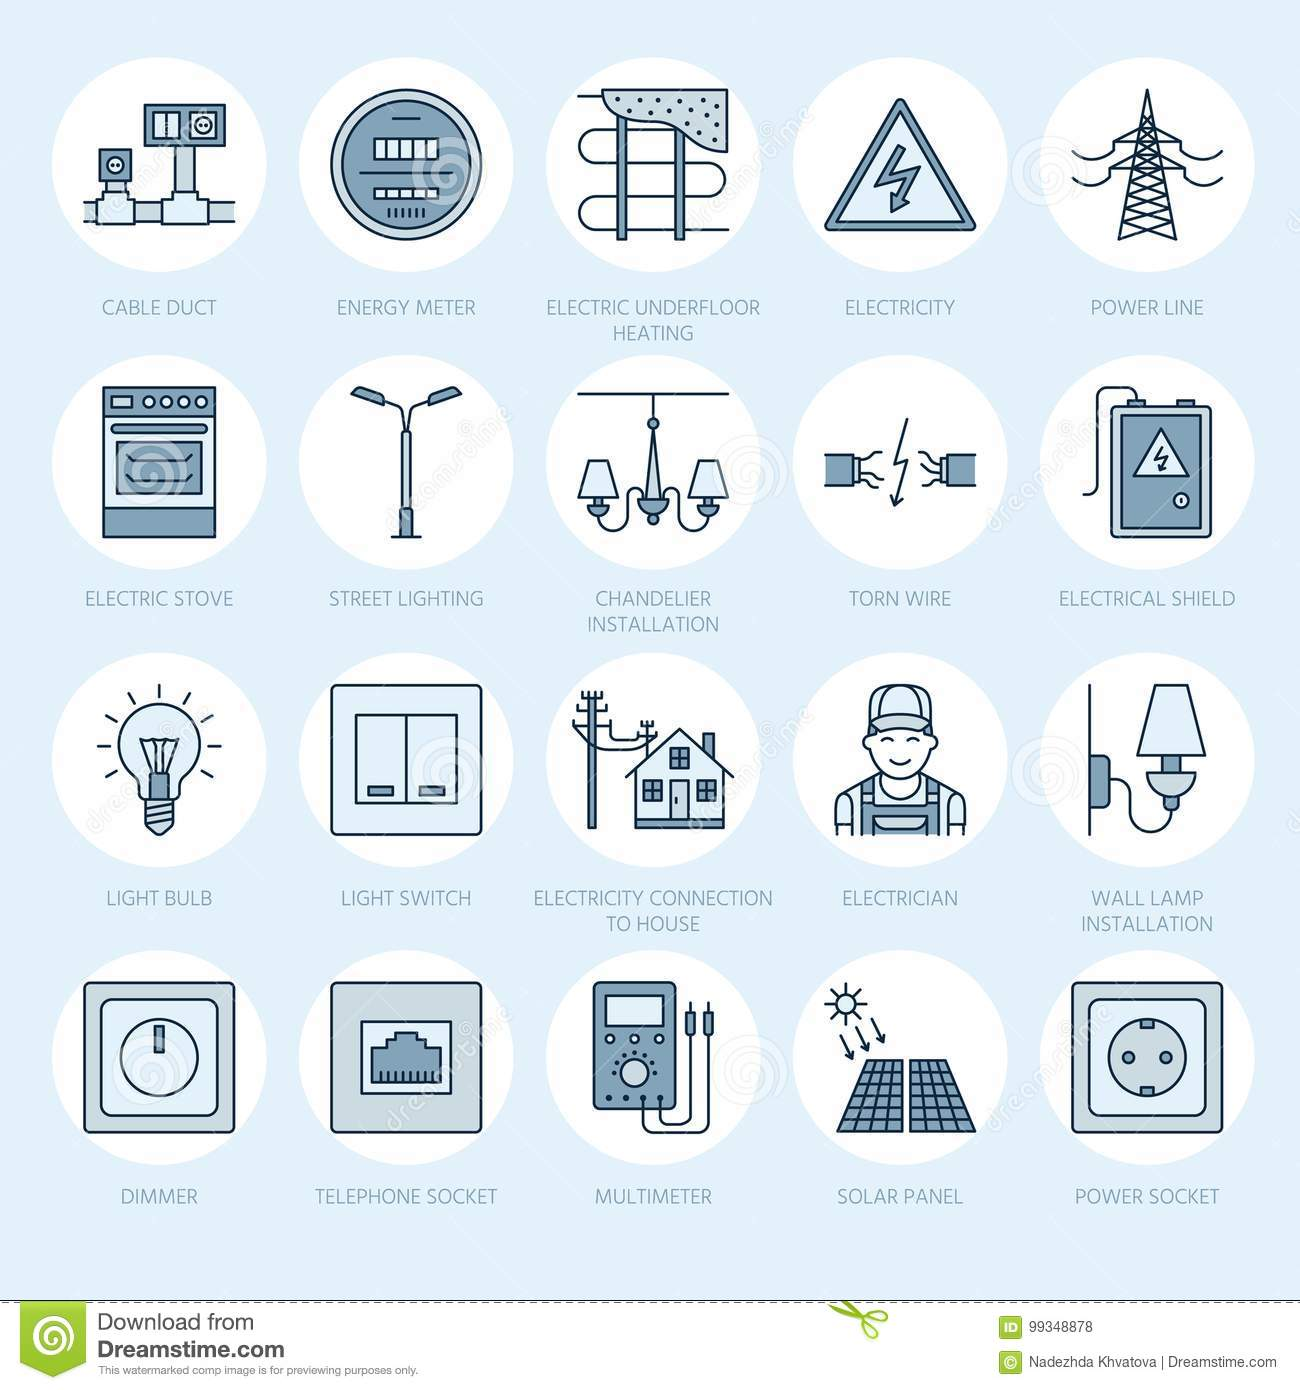 Electricity Engineering Vector Flat Line Icons Electrical Equipment Wiring A Meter Socket Power Torn Wire